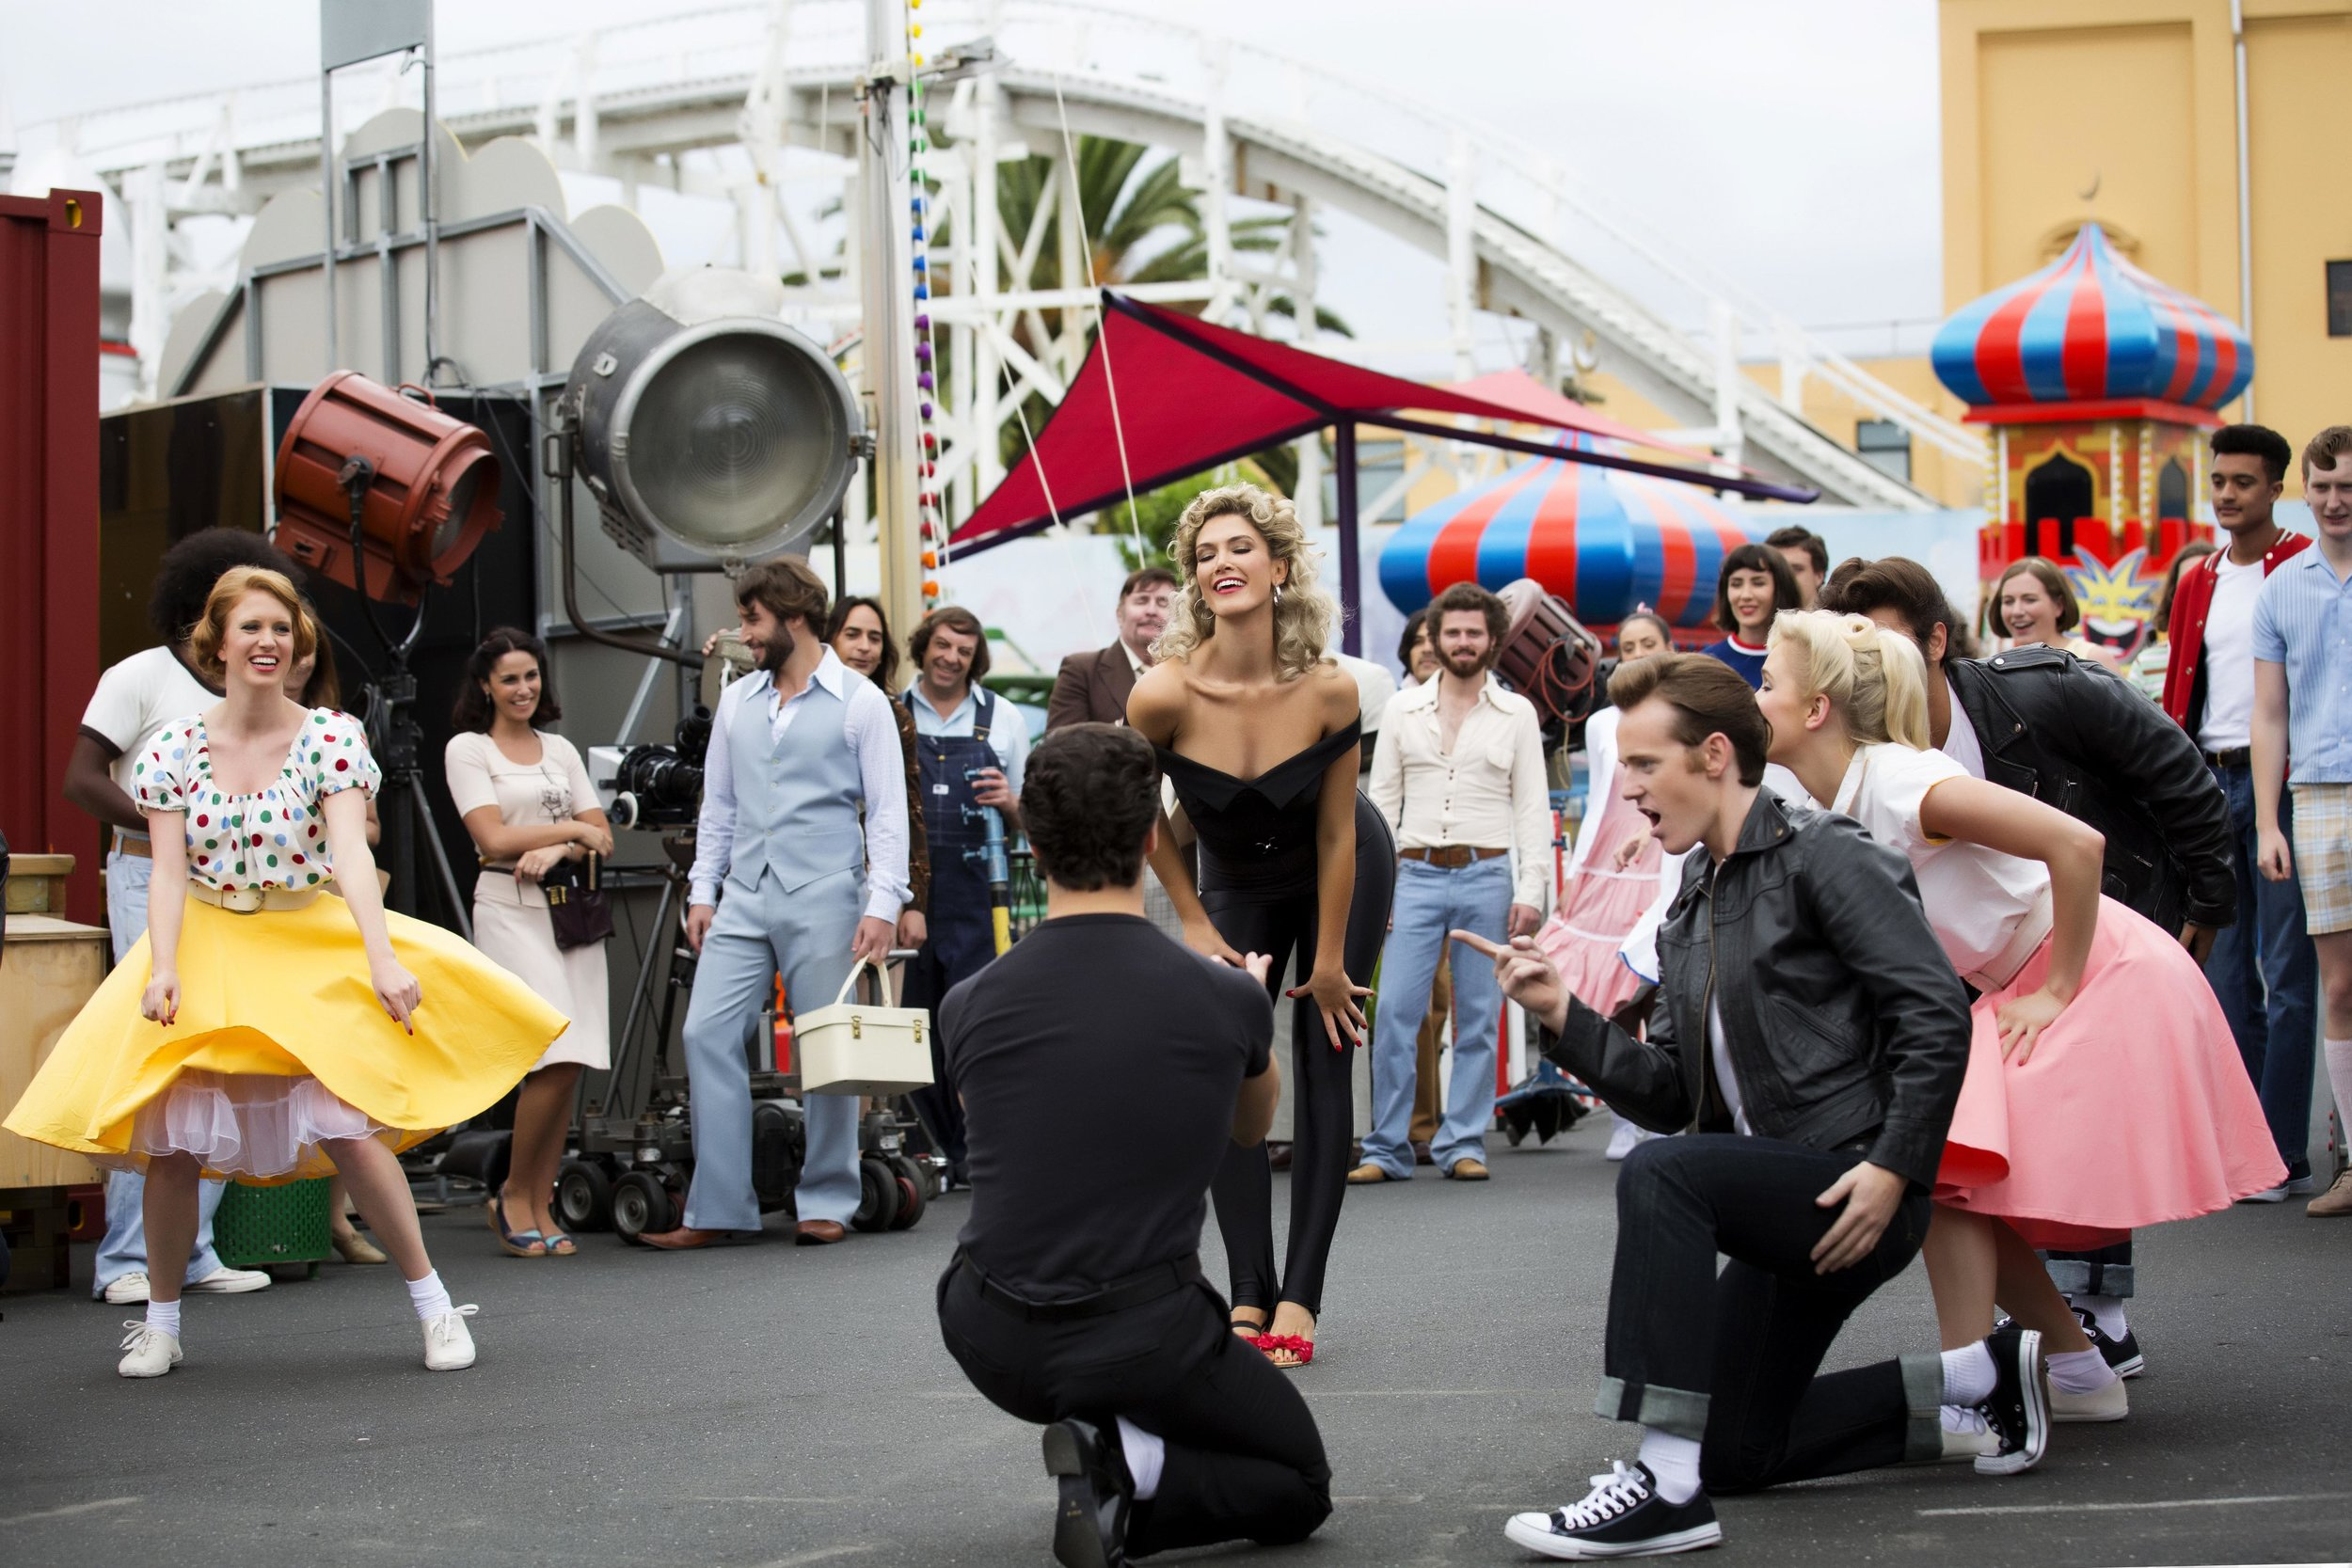 Part 1 - ONJ - Olivia (Delta Goodrem) on the set of Grease (Photo-FMA_ta....jpg